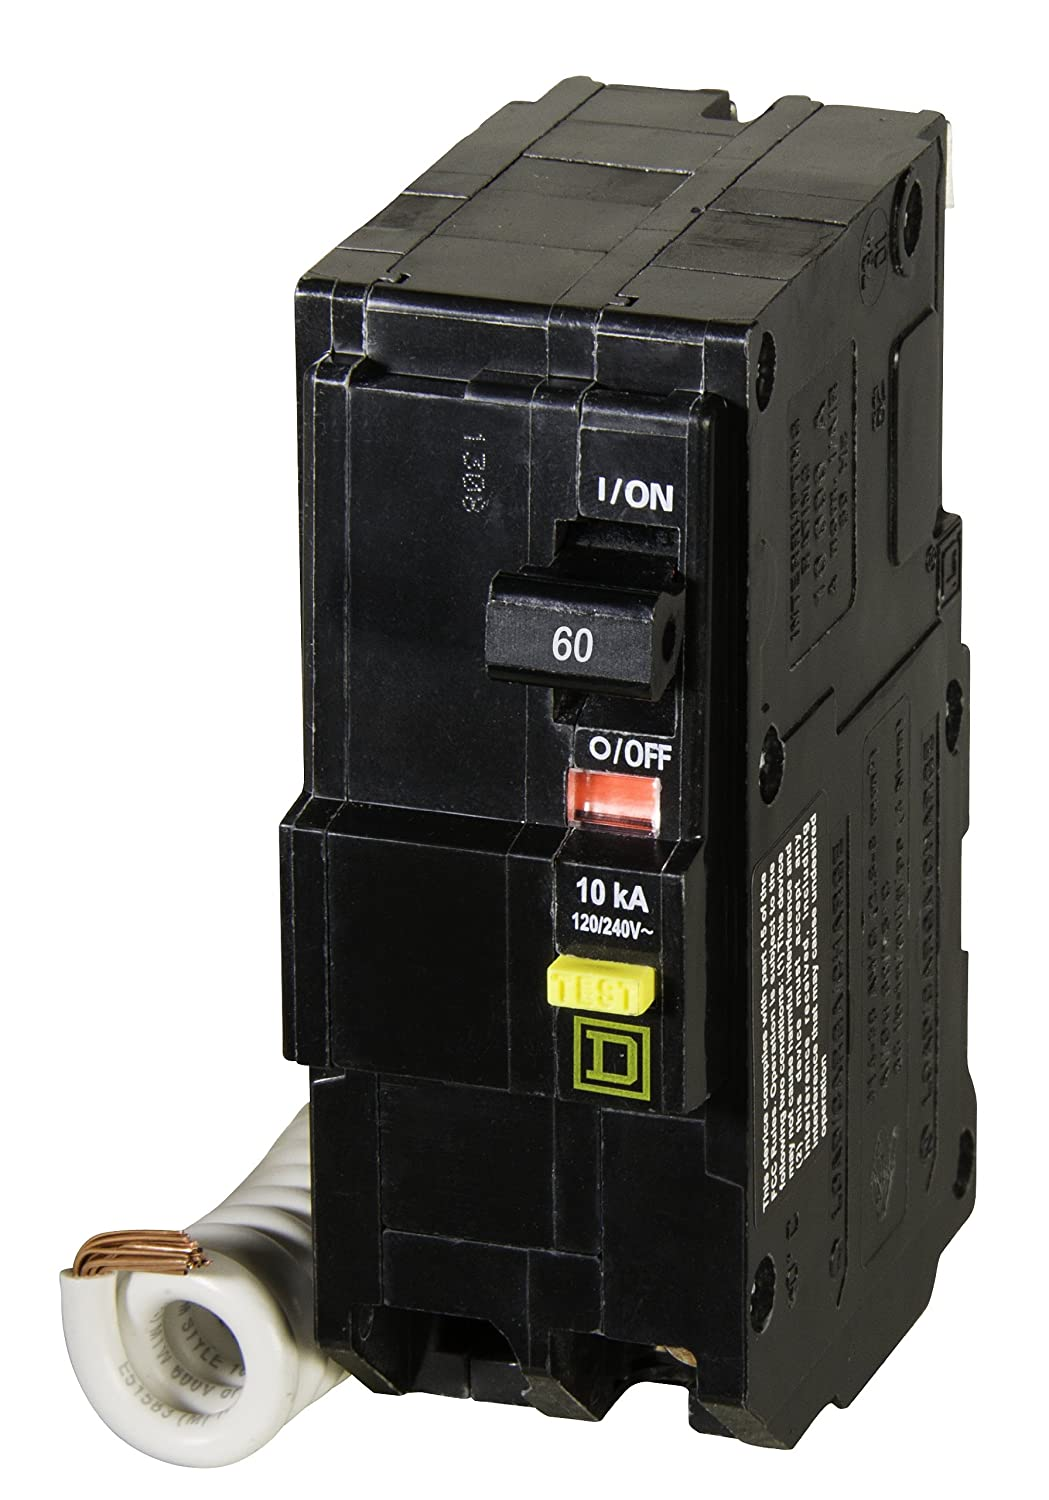 81G3Y2clx L._SL1500_ square d by schneider electric qo260gficp qo 60 amp two pole gfci qo260gfi wiring diagram at gsmx.co